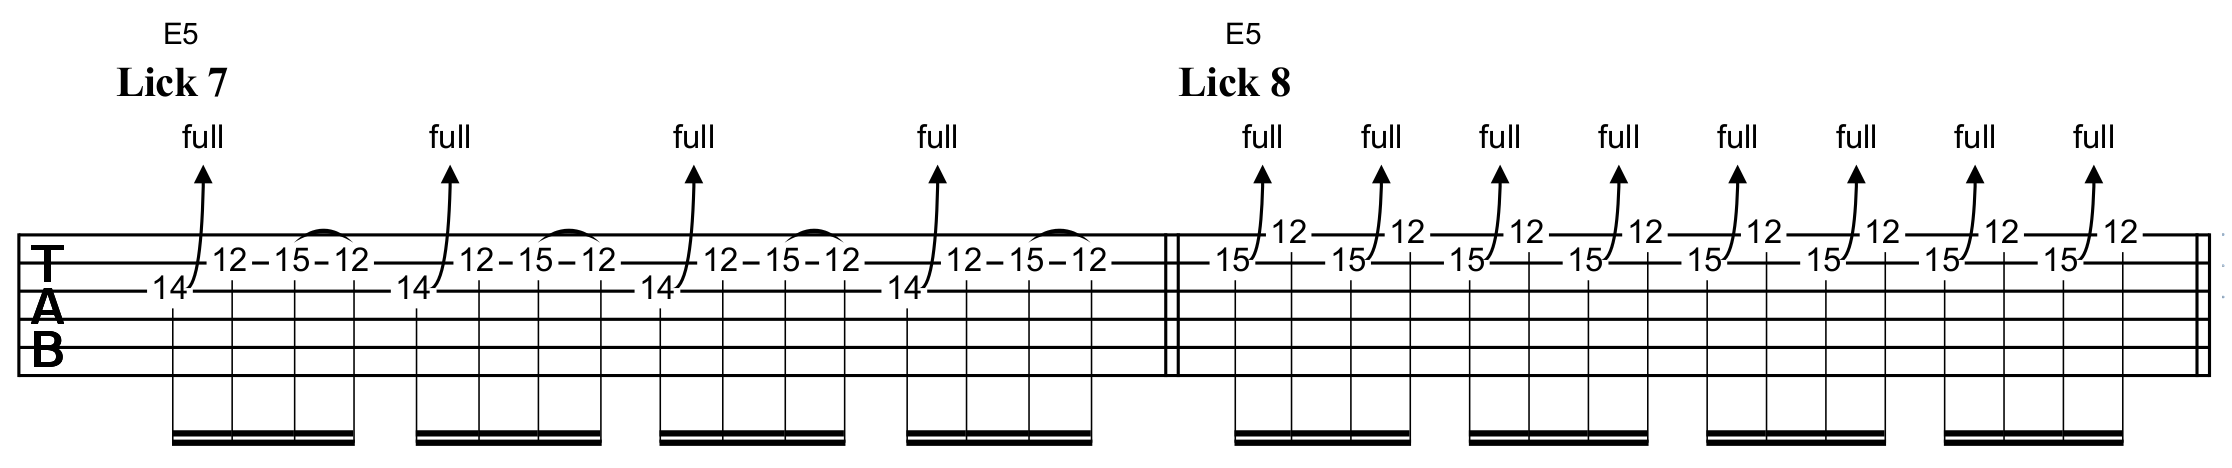 Classic rock style licks like Kirk Hammett would use on the black album solos and earlier